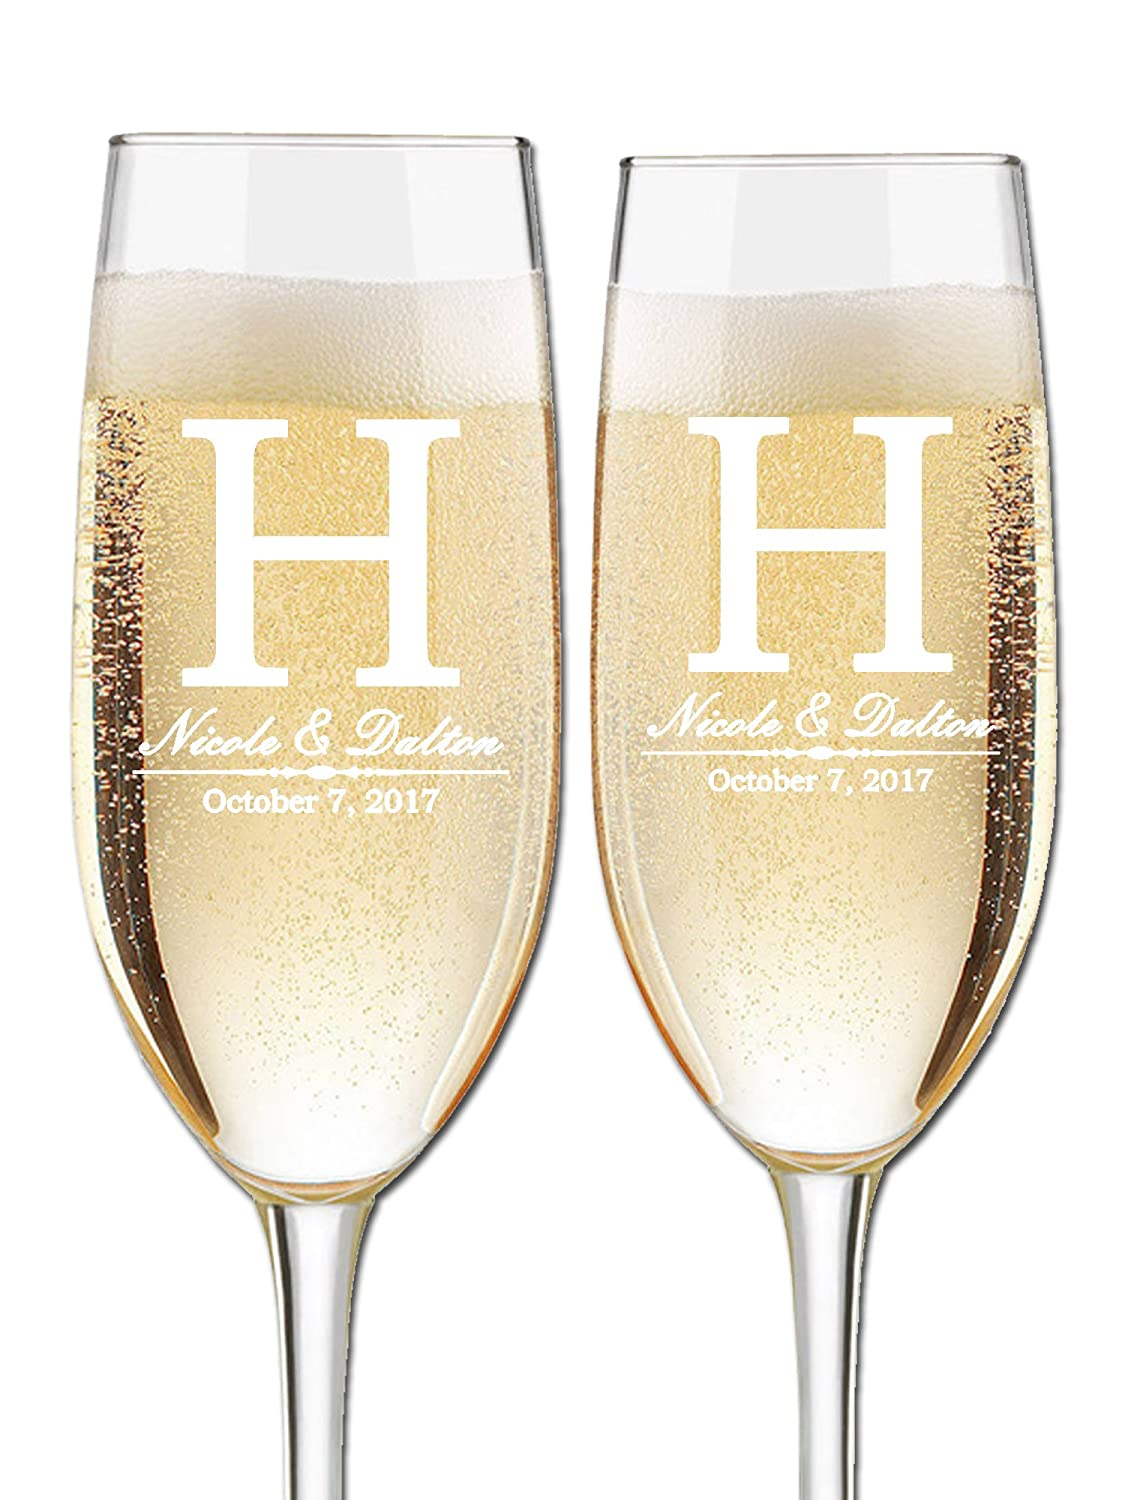 Custom Wedding Champagne Flutes- Set of 2 –Bride and Groom First Names, Last Name Initial Monogram and Wedding Date – Personalized for Bride and Groom - Customized Engraved Wedding Gift Etch Workz